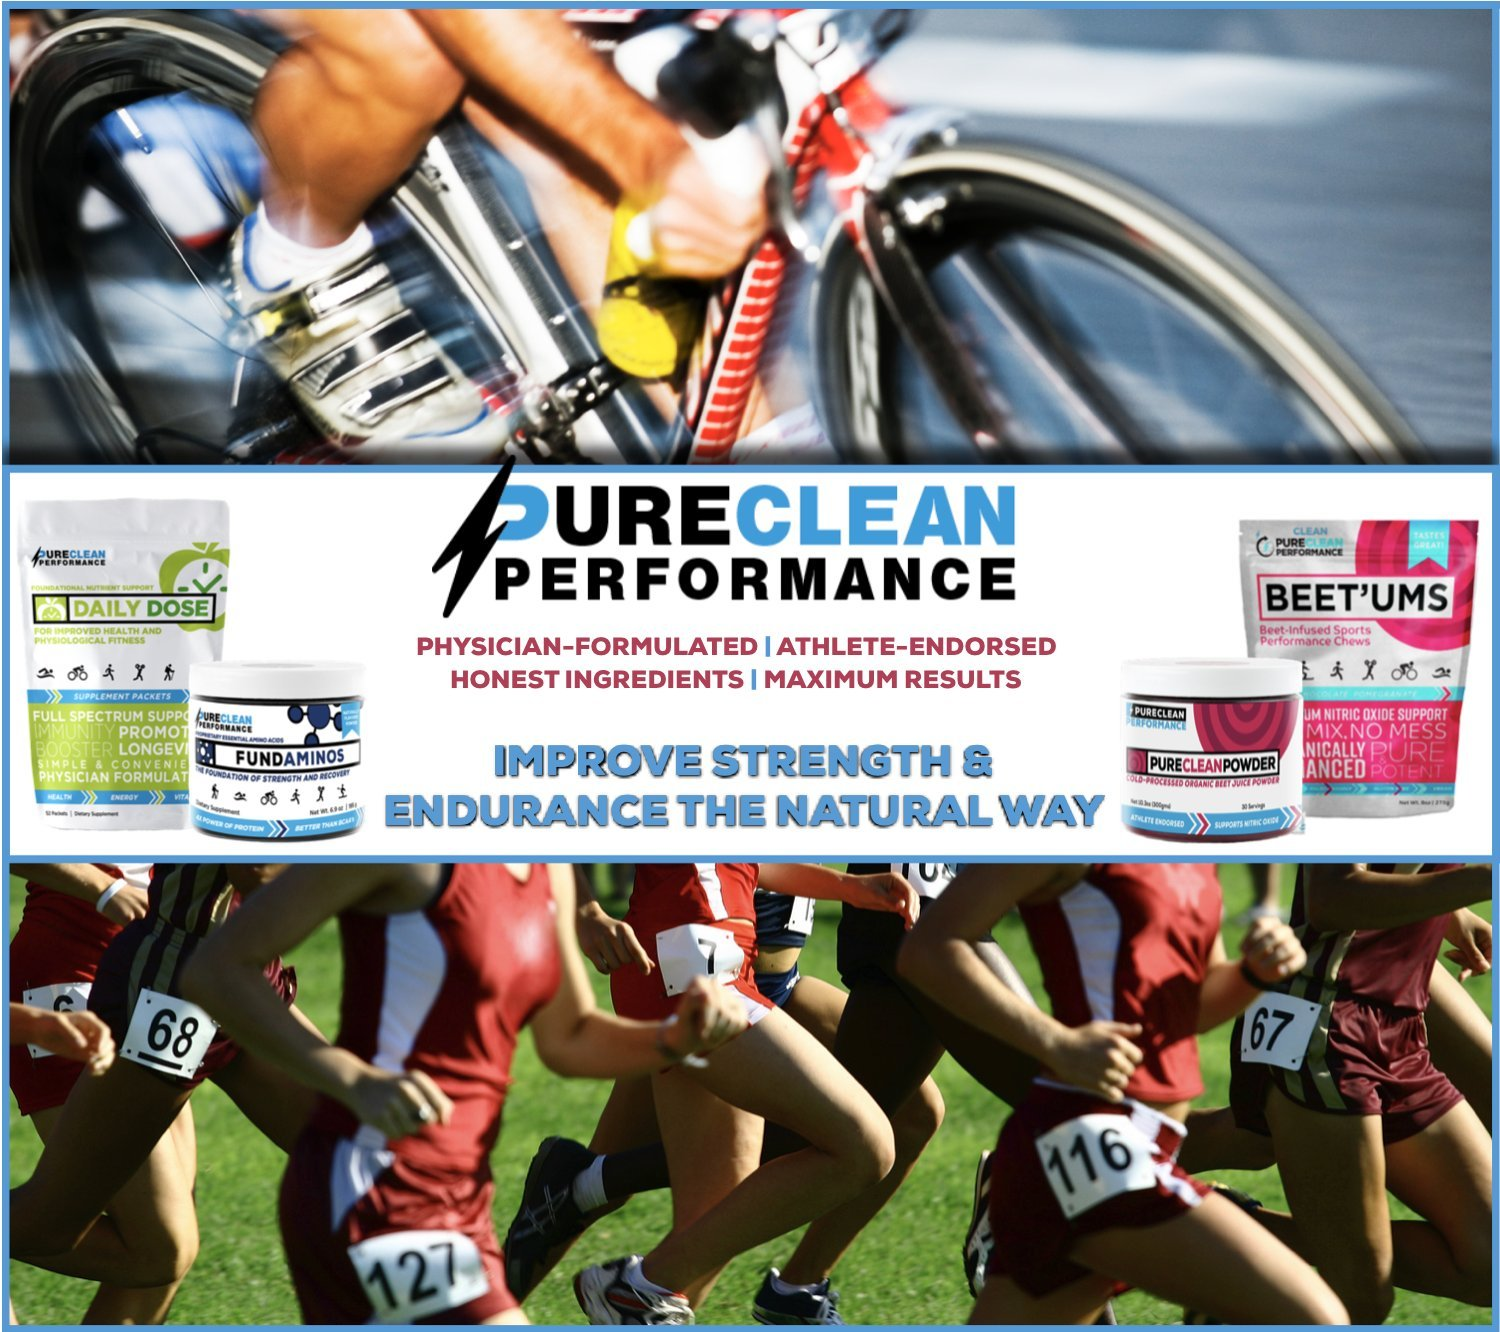 PureClean Performance FUNDAMINOS - Plant-Based Essential Amino Acid+BCAA Blend, Organic, Nothing Artificial, Athlete-Endorsed, Physician-Formulated for Peak Strength and Faster Recovery,60 Servings by PureClean Performance